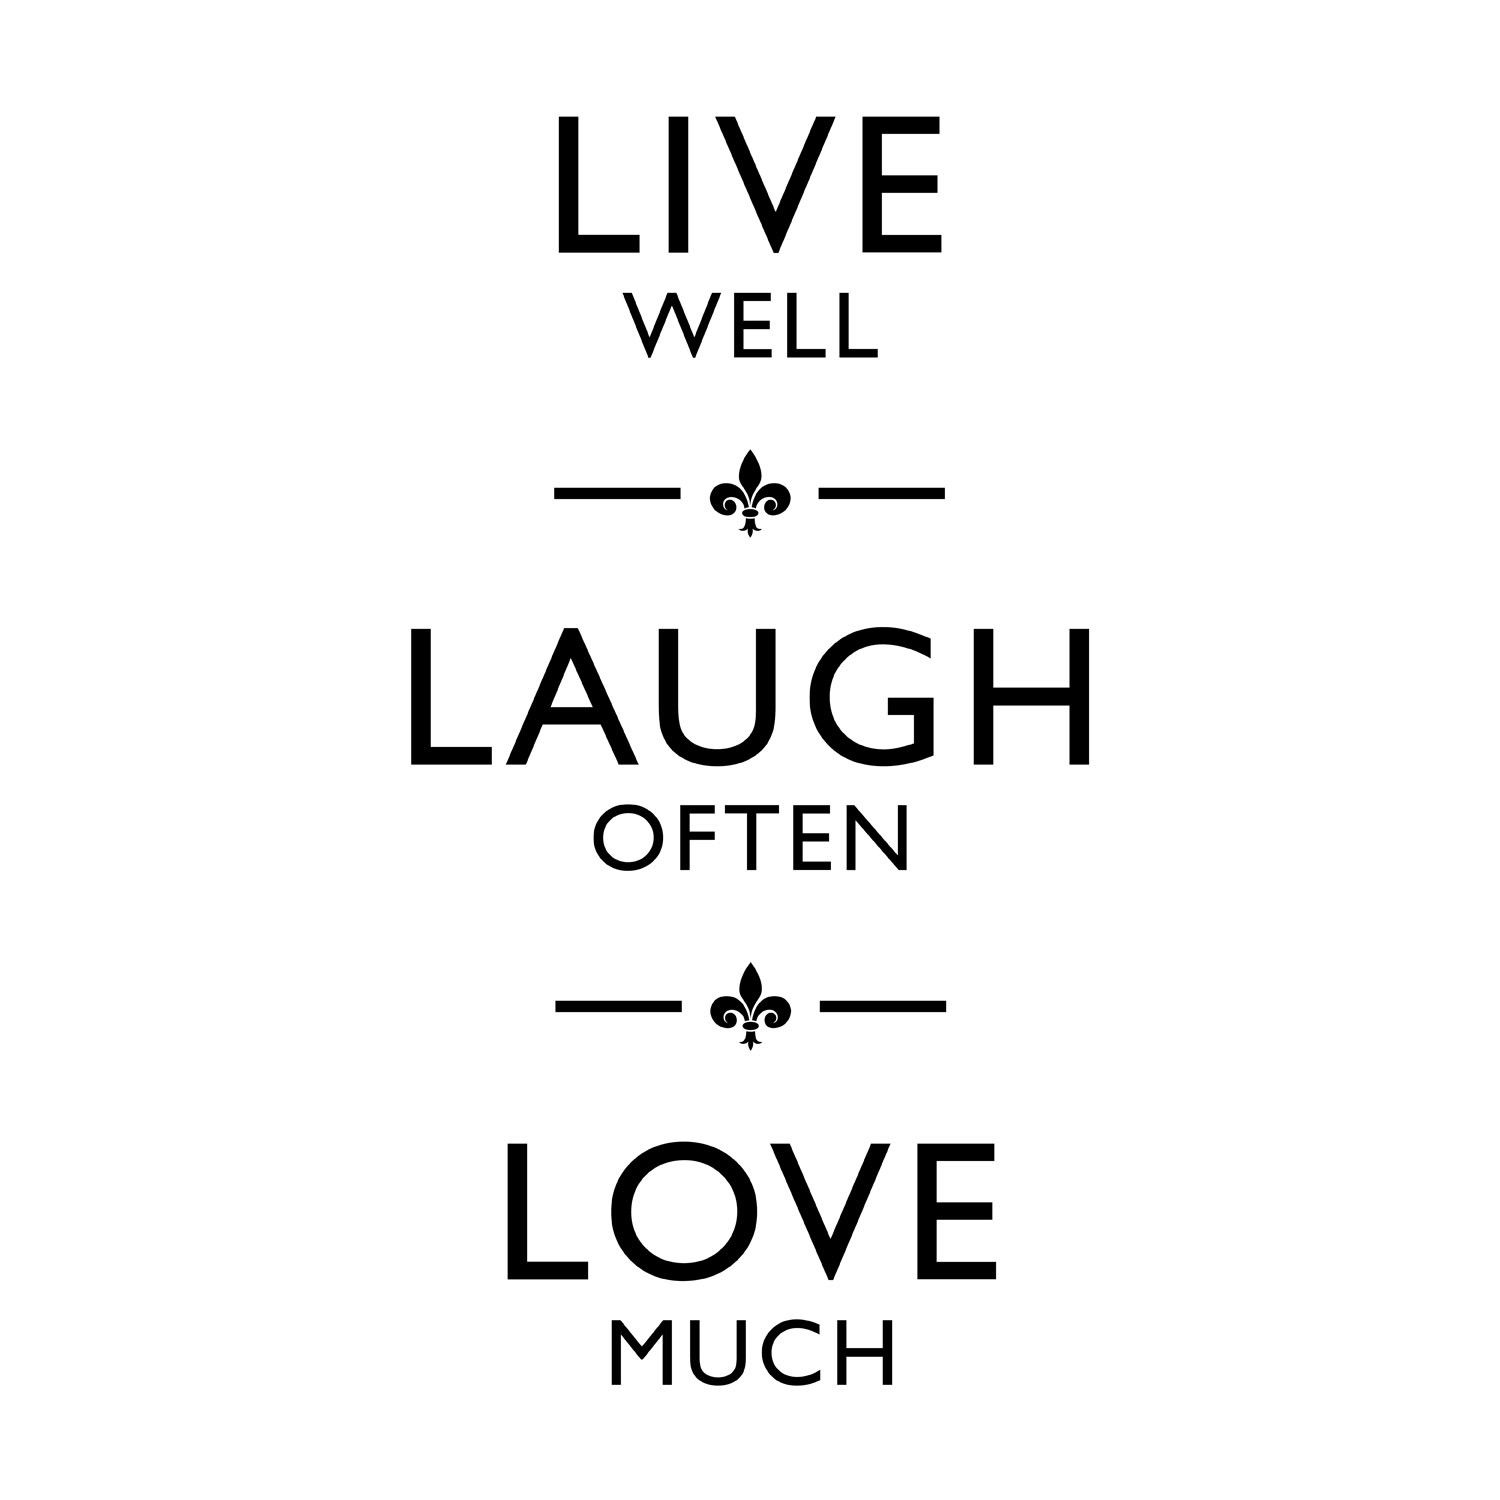 Live Laugh Love Quote Best Love And Laughter Quotes Live Laugh Love Quote Wall  Advice To My